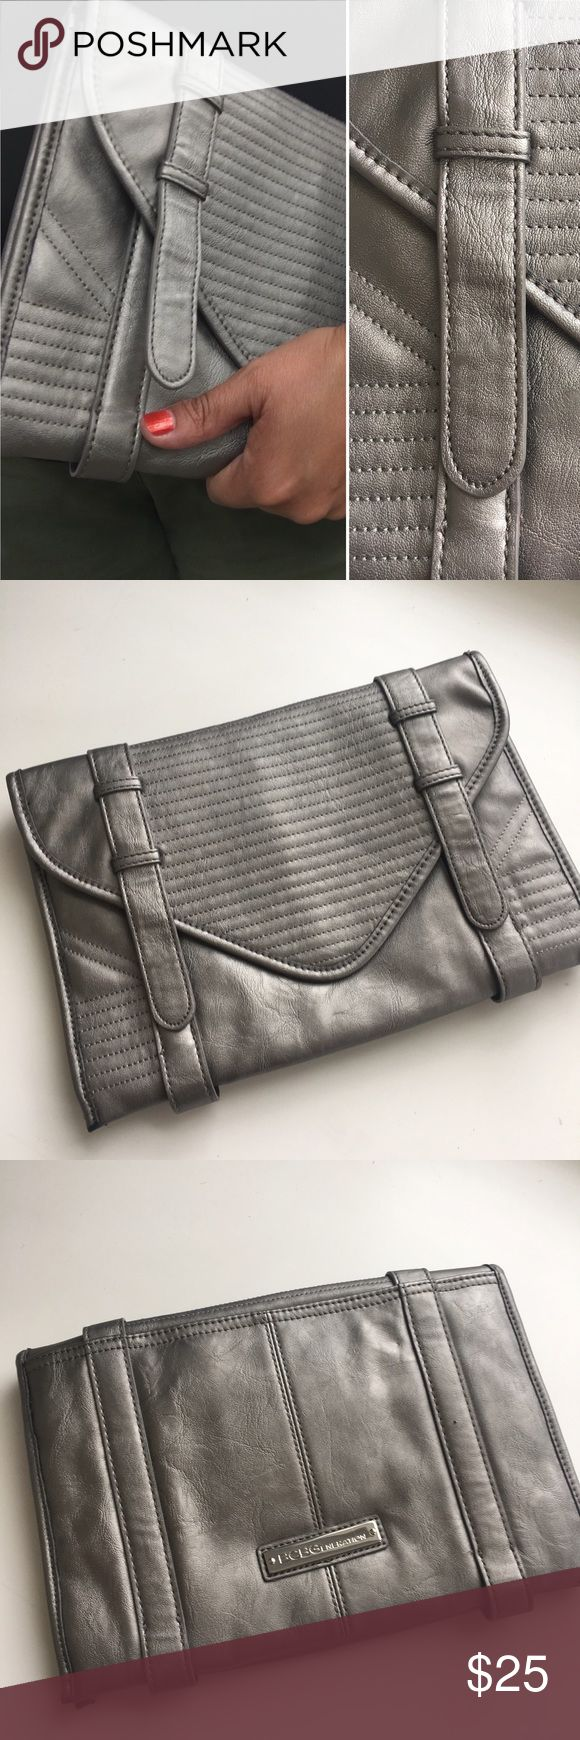 "BCBG Clutch Silvery Leather Clutch has been gently used. 12"" tall by 20"" wide. Cloth interior with pockets. Closure has magnet. BCBGeneration Bags Clutches & Wristlets"